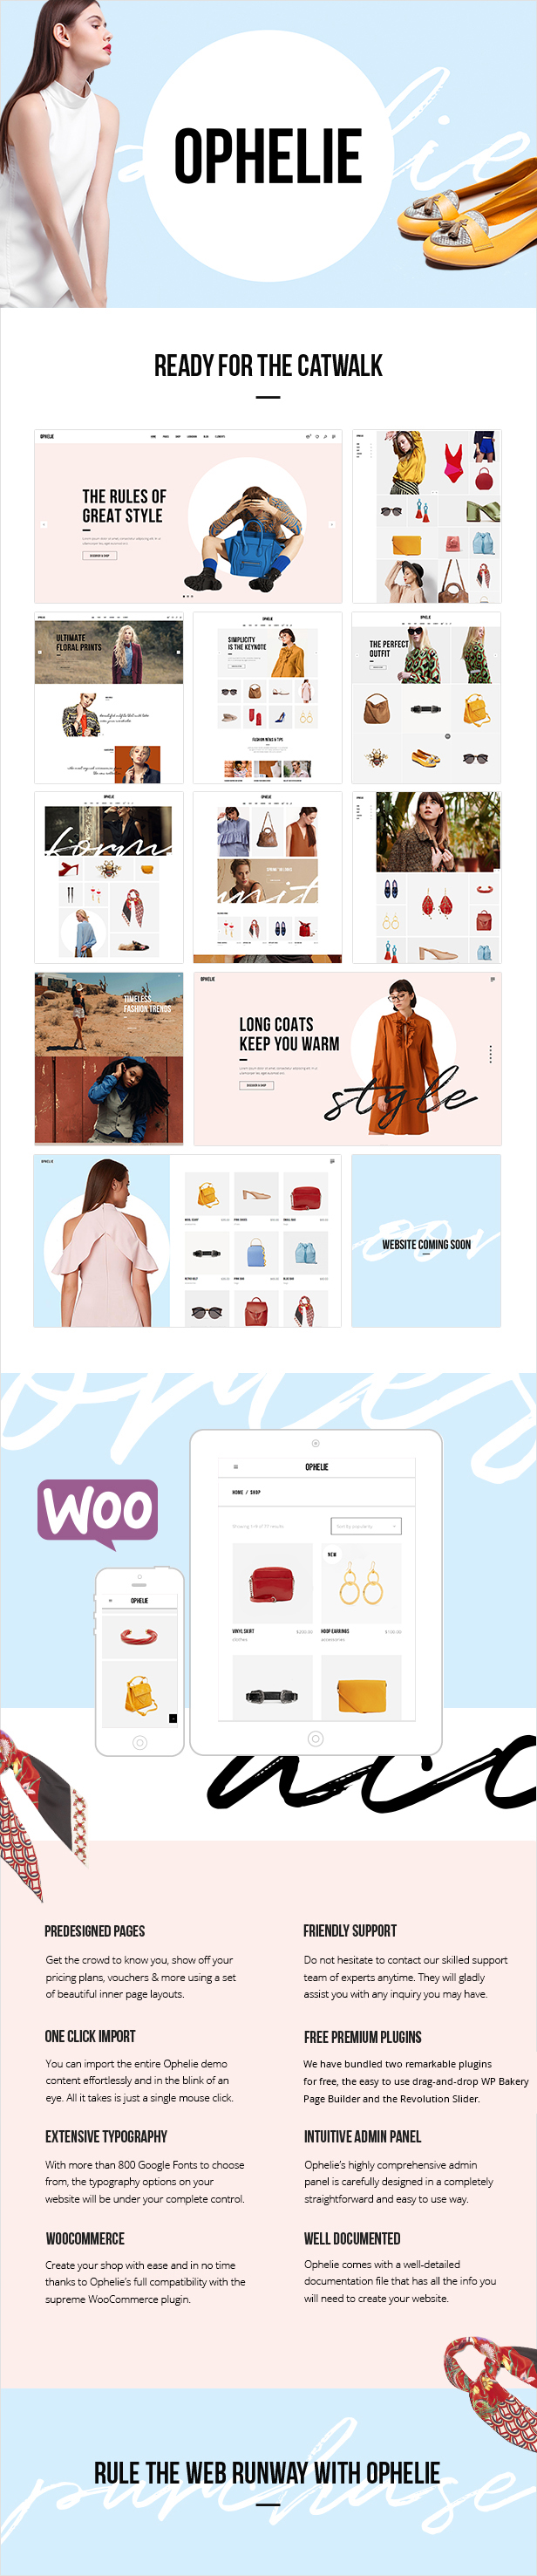 Ophelie - WooCommerce Theme for Fashion Shops, Stores and Brands - 1